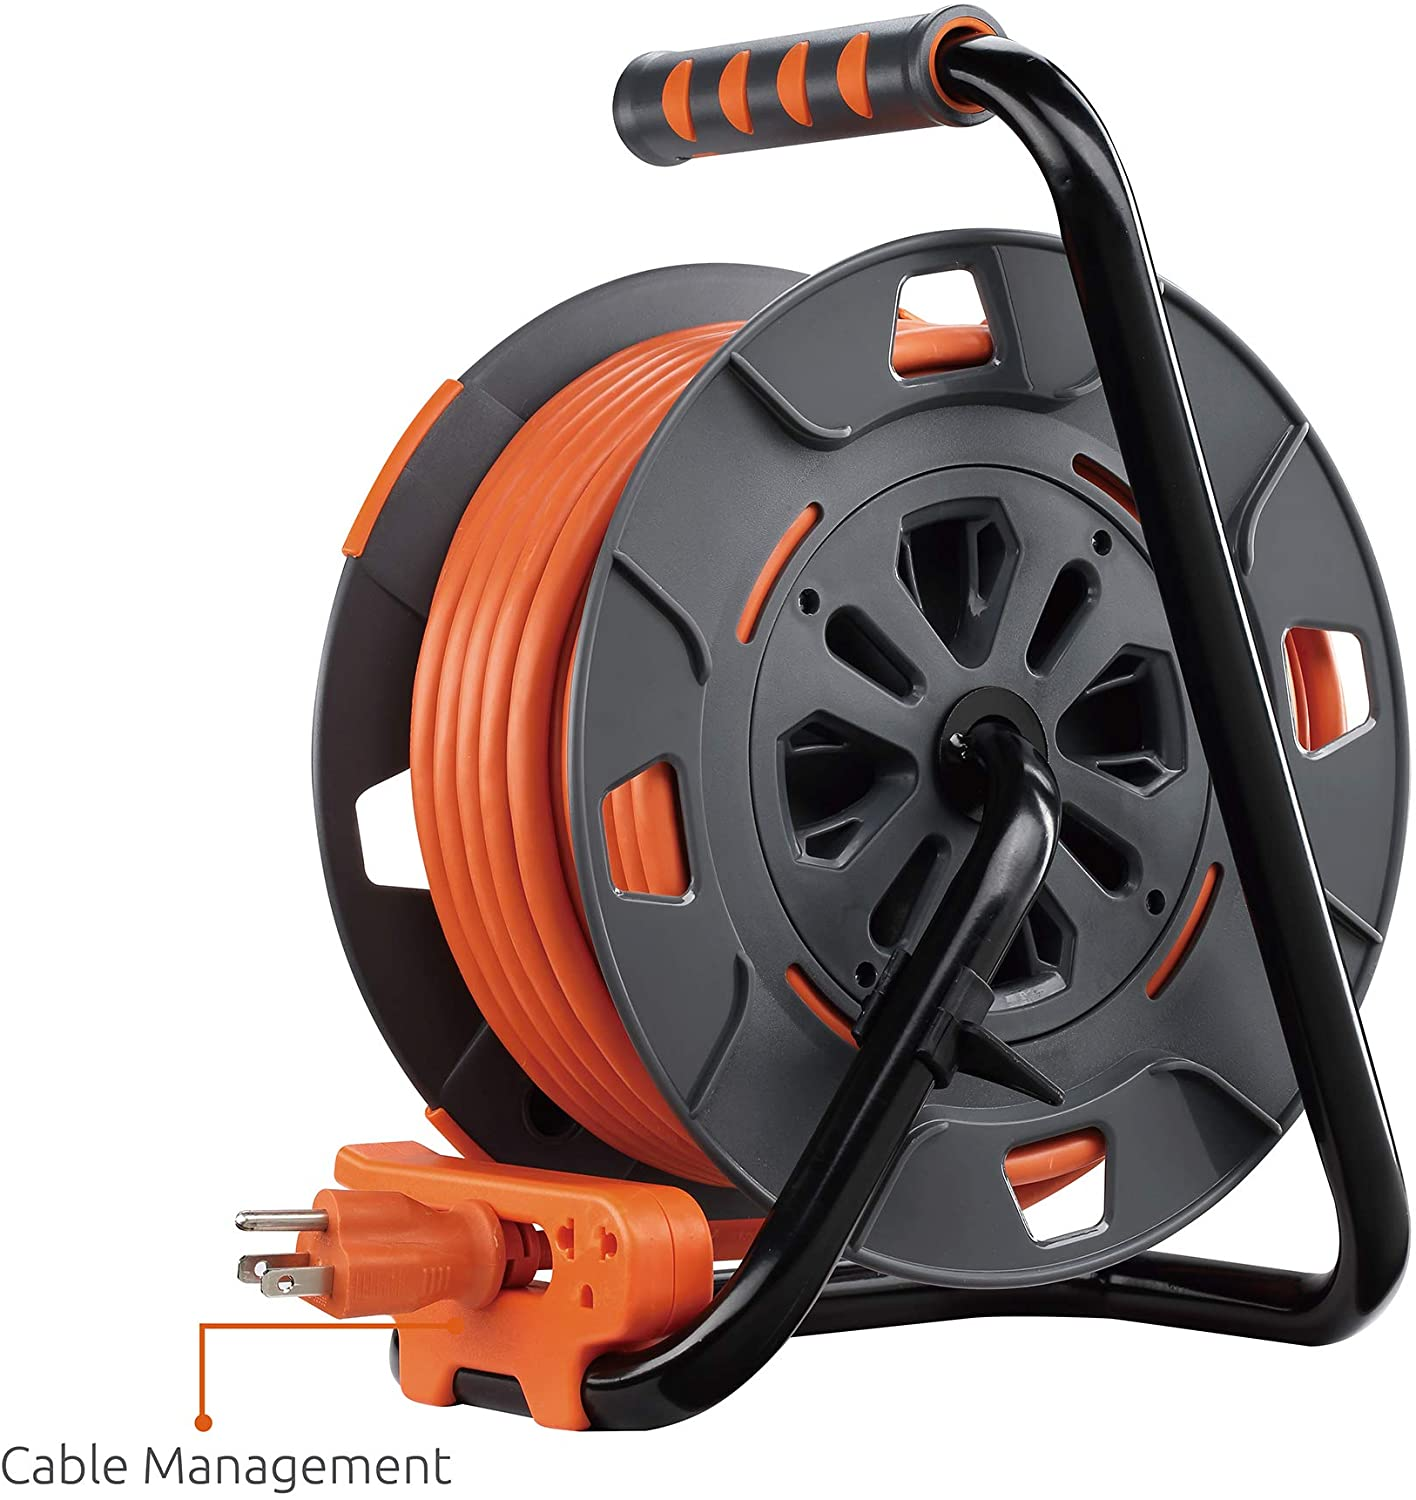 14 AWG SJTW Cable Heavy Duty High Visibility Power Cord. Extension Cord 4 Power Outlets Link2Home Cord Reel 80 ft